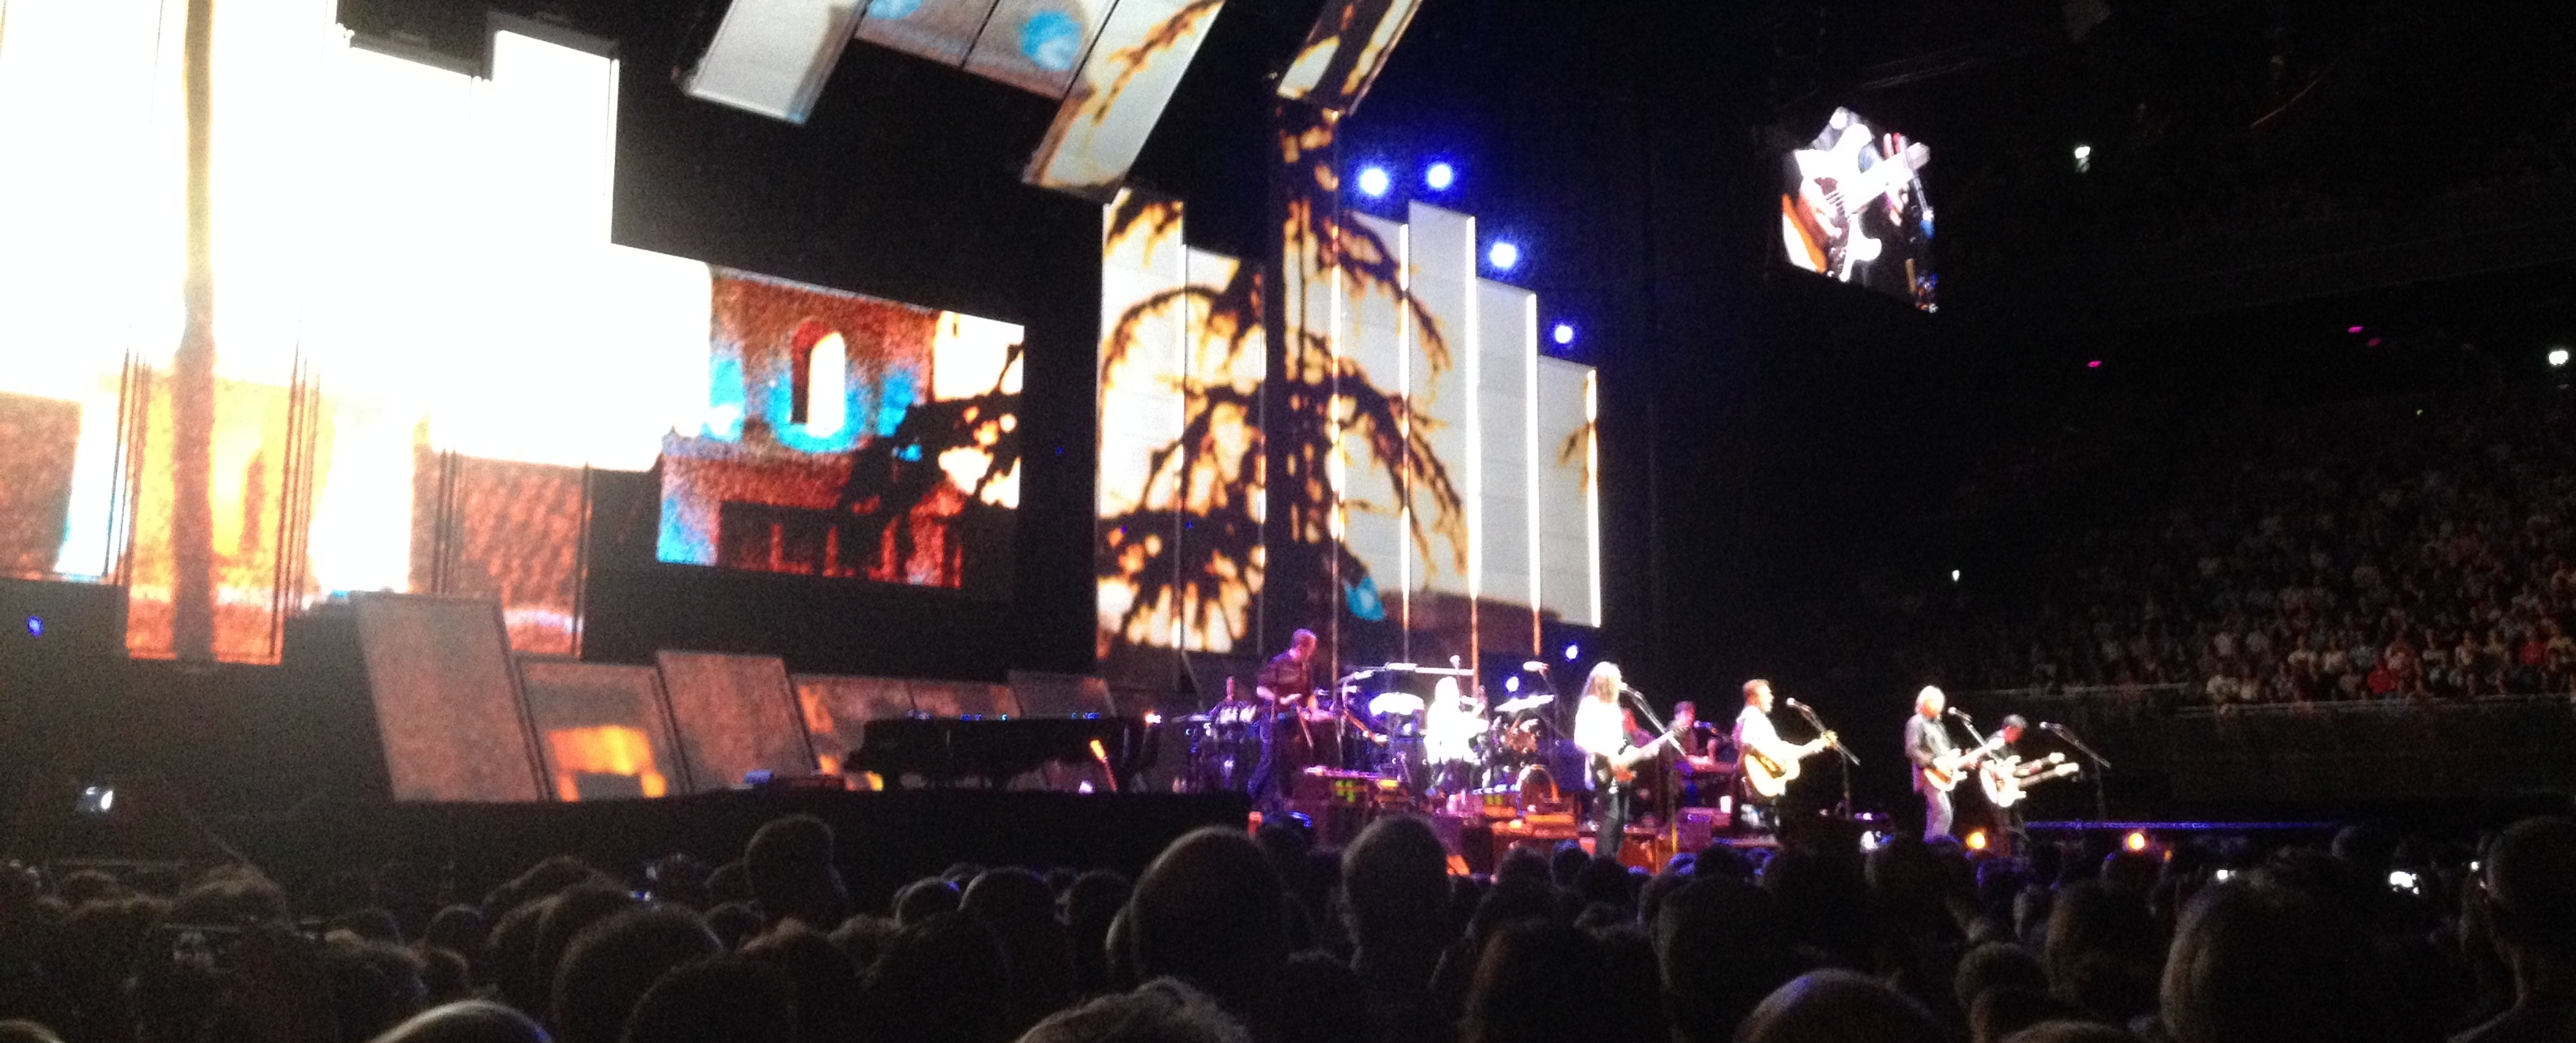 Concertreview: The legen….wait for it..dary Eagles!